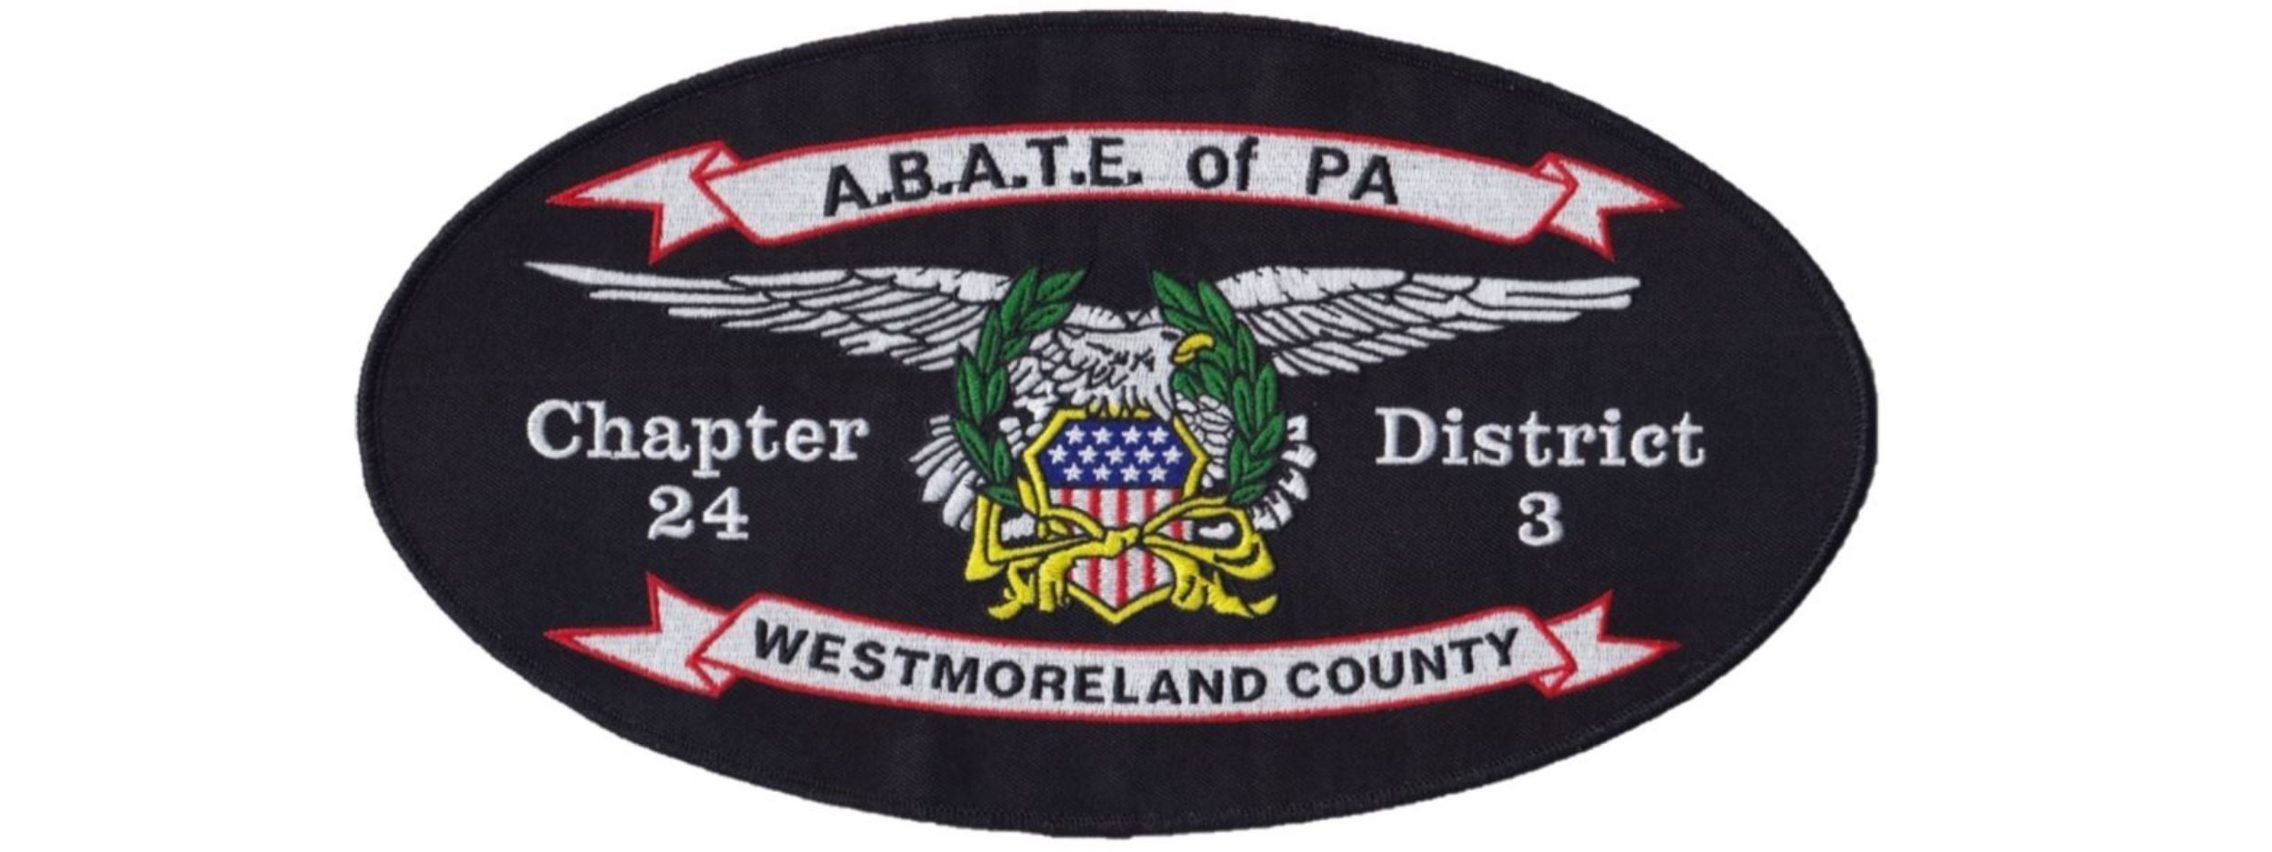 Westmoreland County A.B.A.T.E. of PA